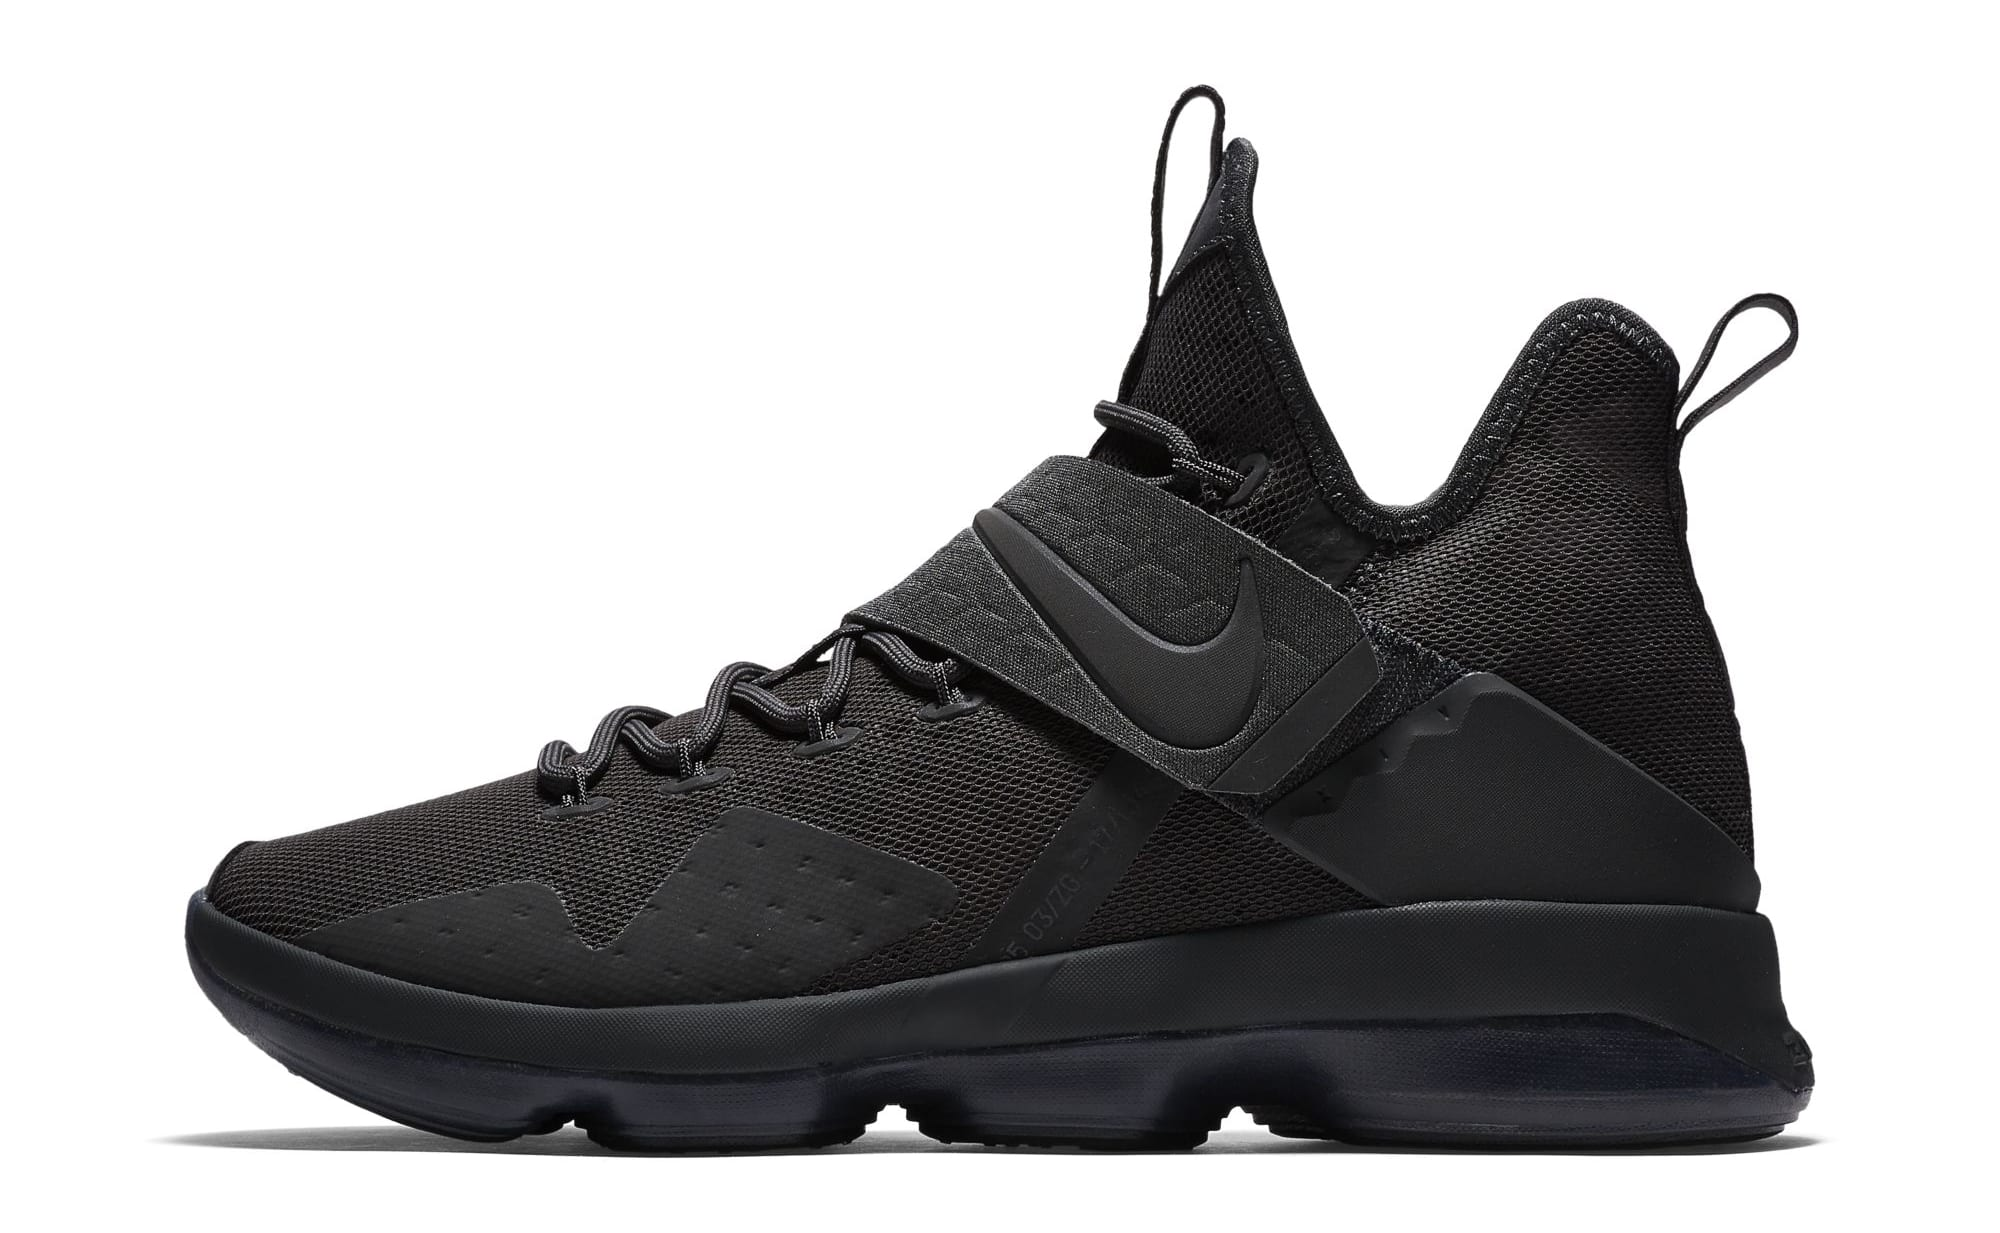 Nike LeBron 14 Blackout Zero Dark Thirty-23 Release Date 852402-002  7f422bdd0